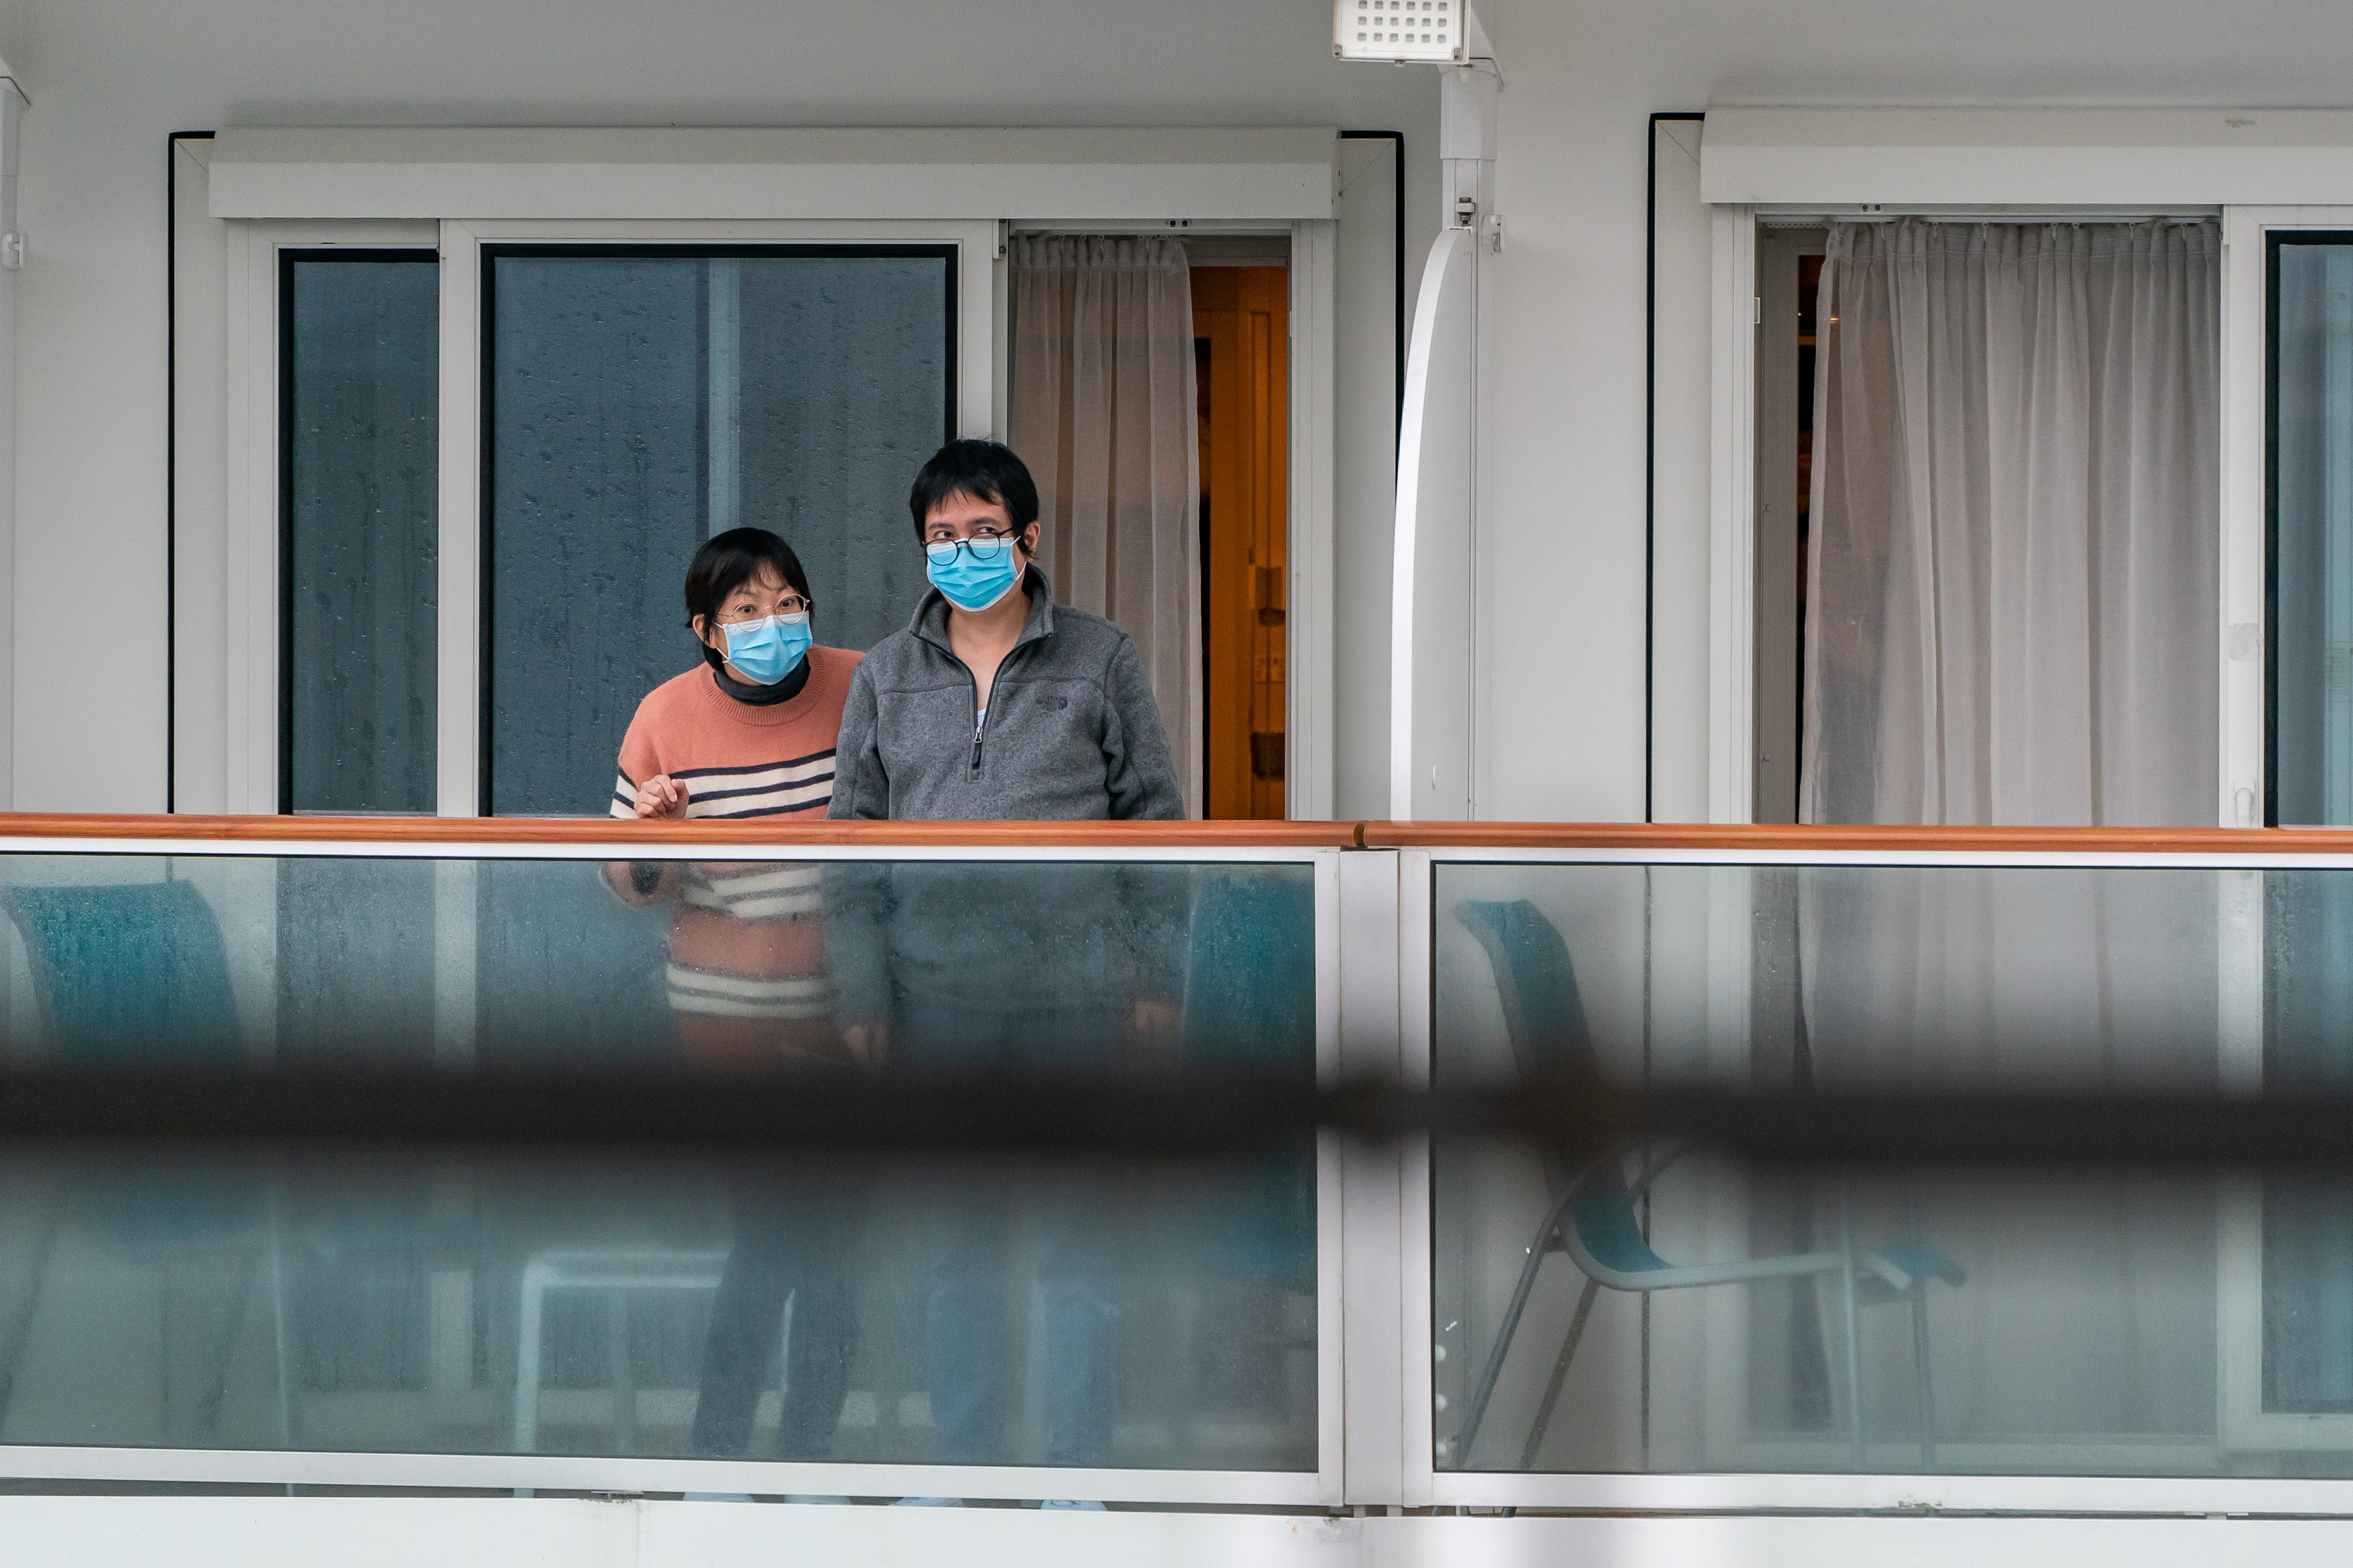 More than 3600 passengers and staff have been in quarantine for four days after three people returned positive tests for coronavirus.